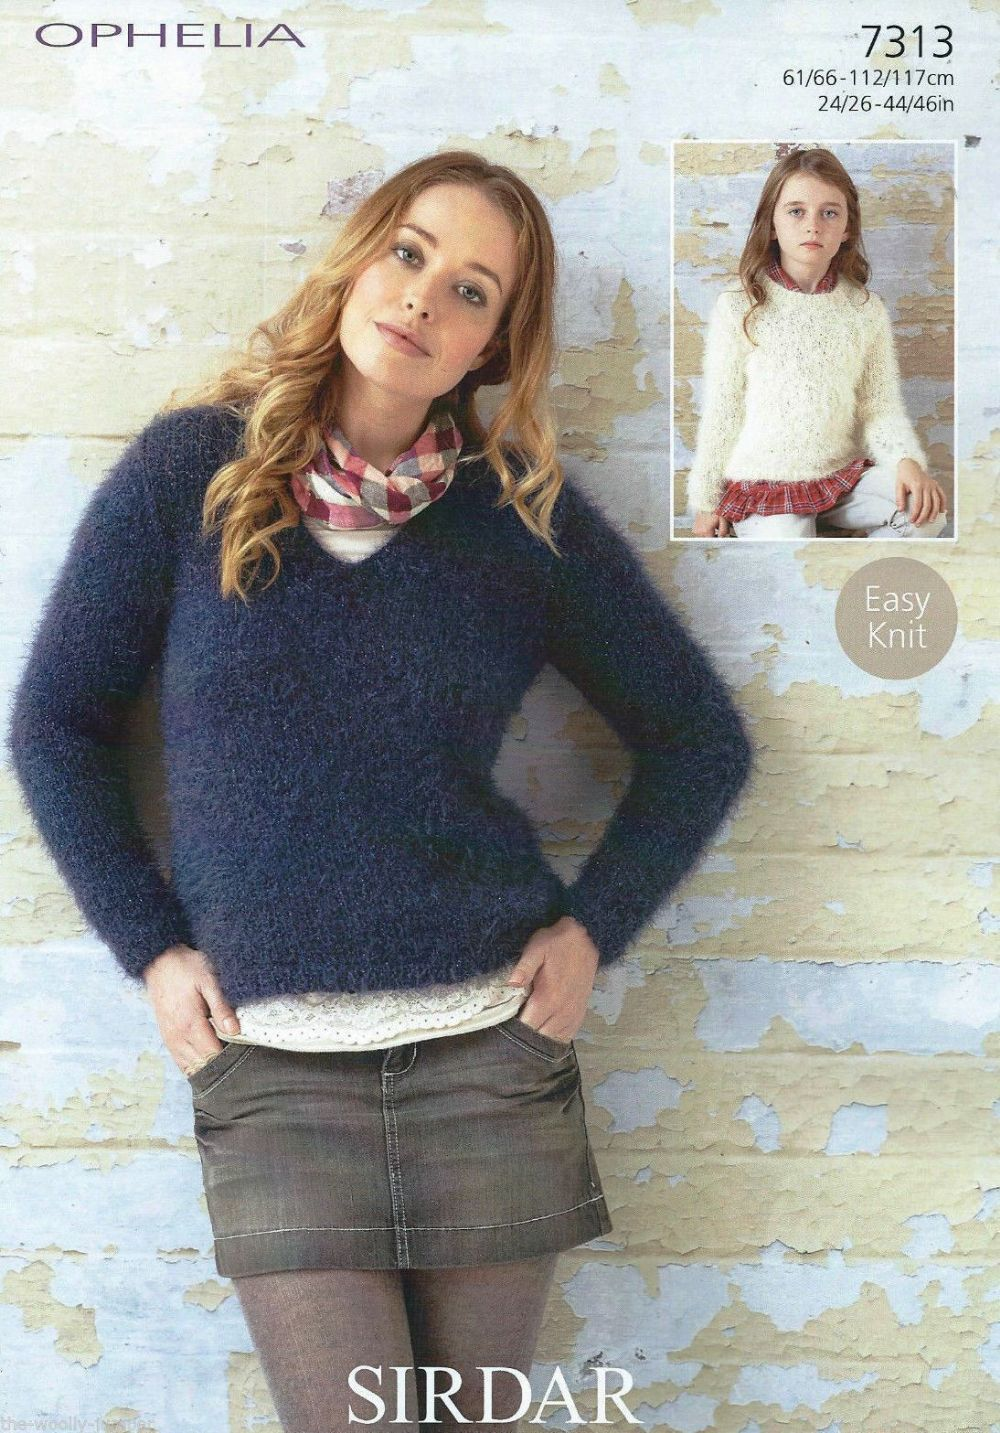 7313 - SIRDAR OPHELIA CHUNKY EASY KNIT SWEATER KNITTING PATTERN - TO ...